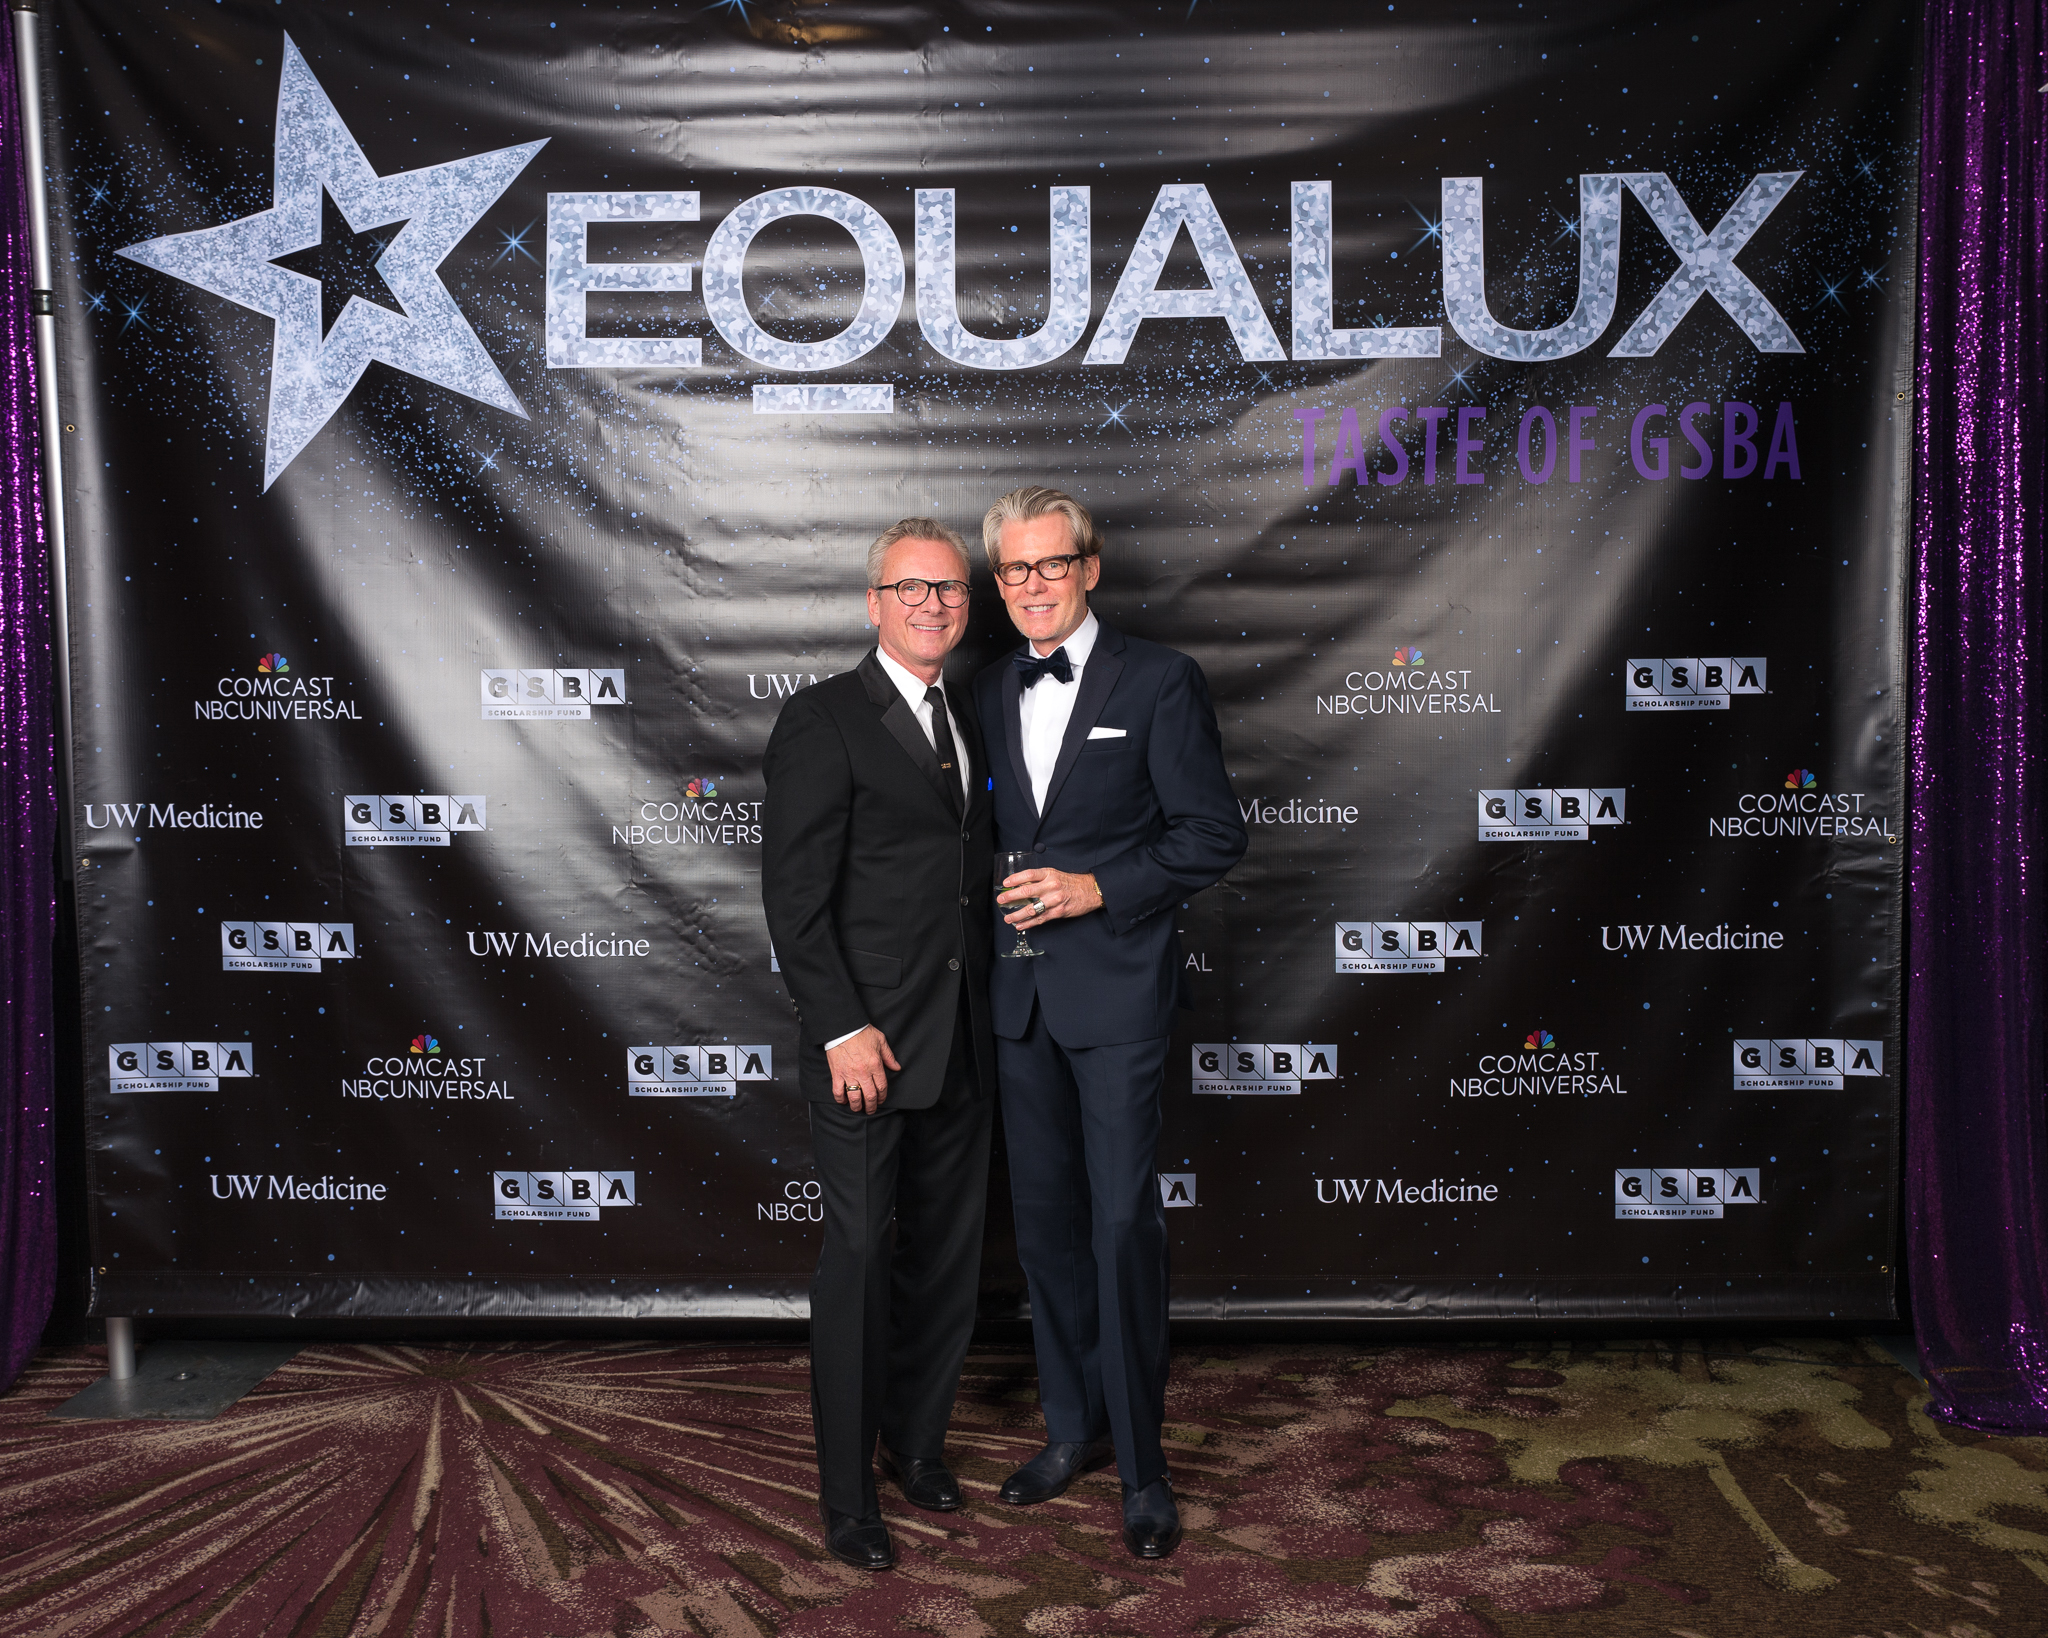 111718_GSBA EQUALUX at The Westin Seattle (Credit- Nate Gowdy)-41.jpg